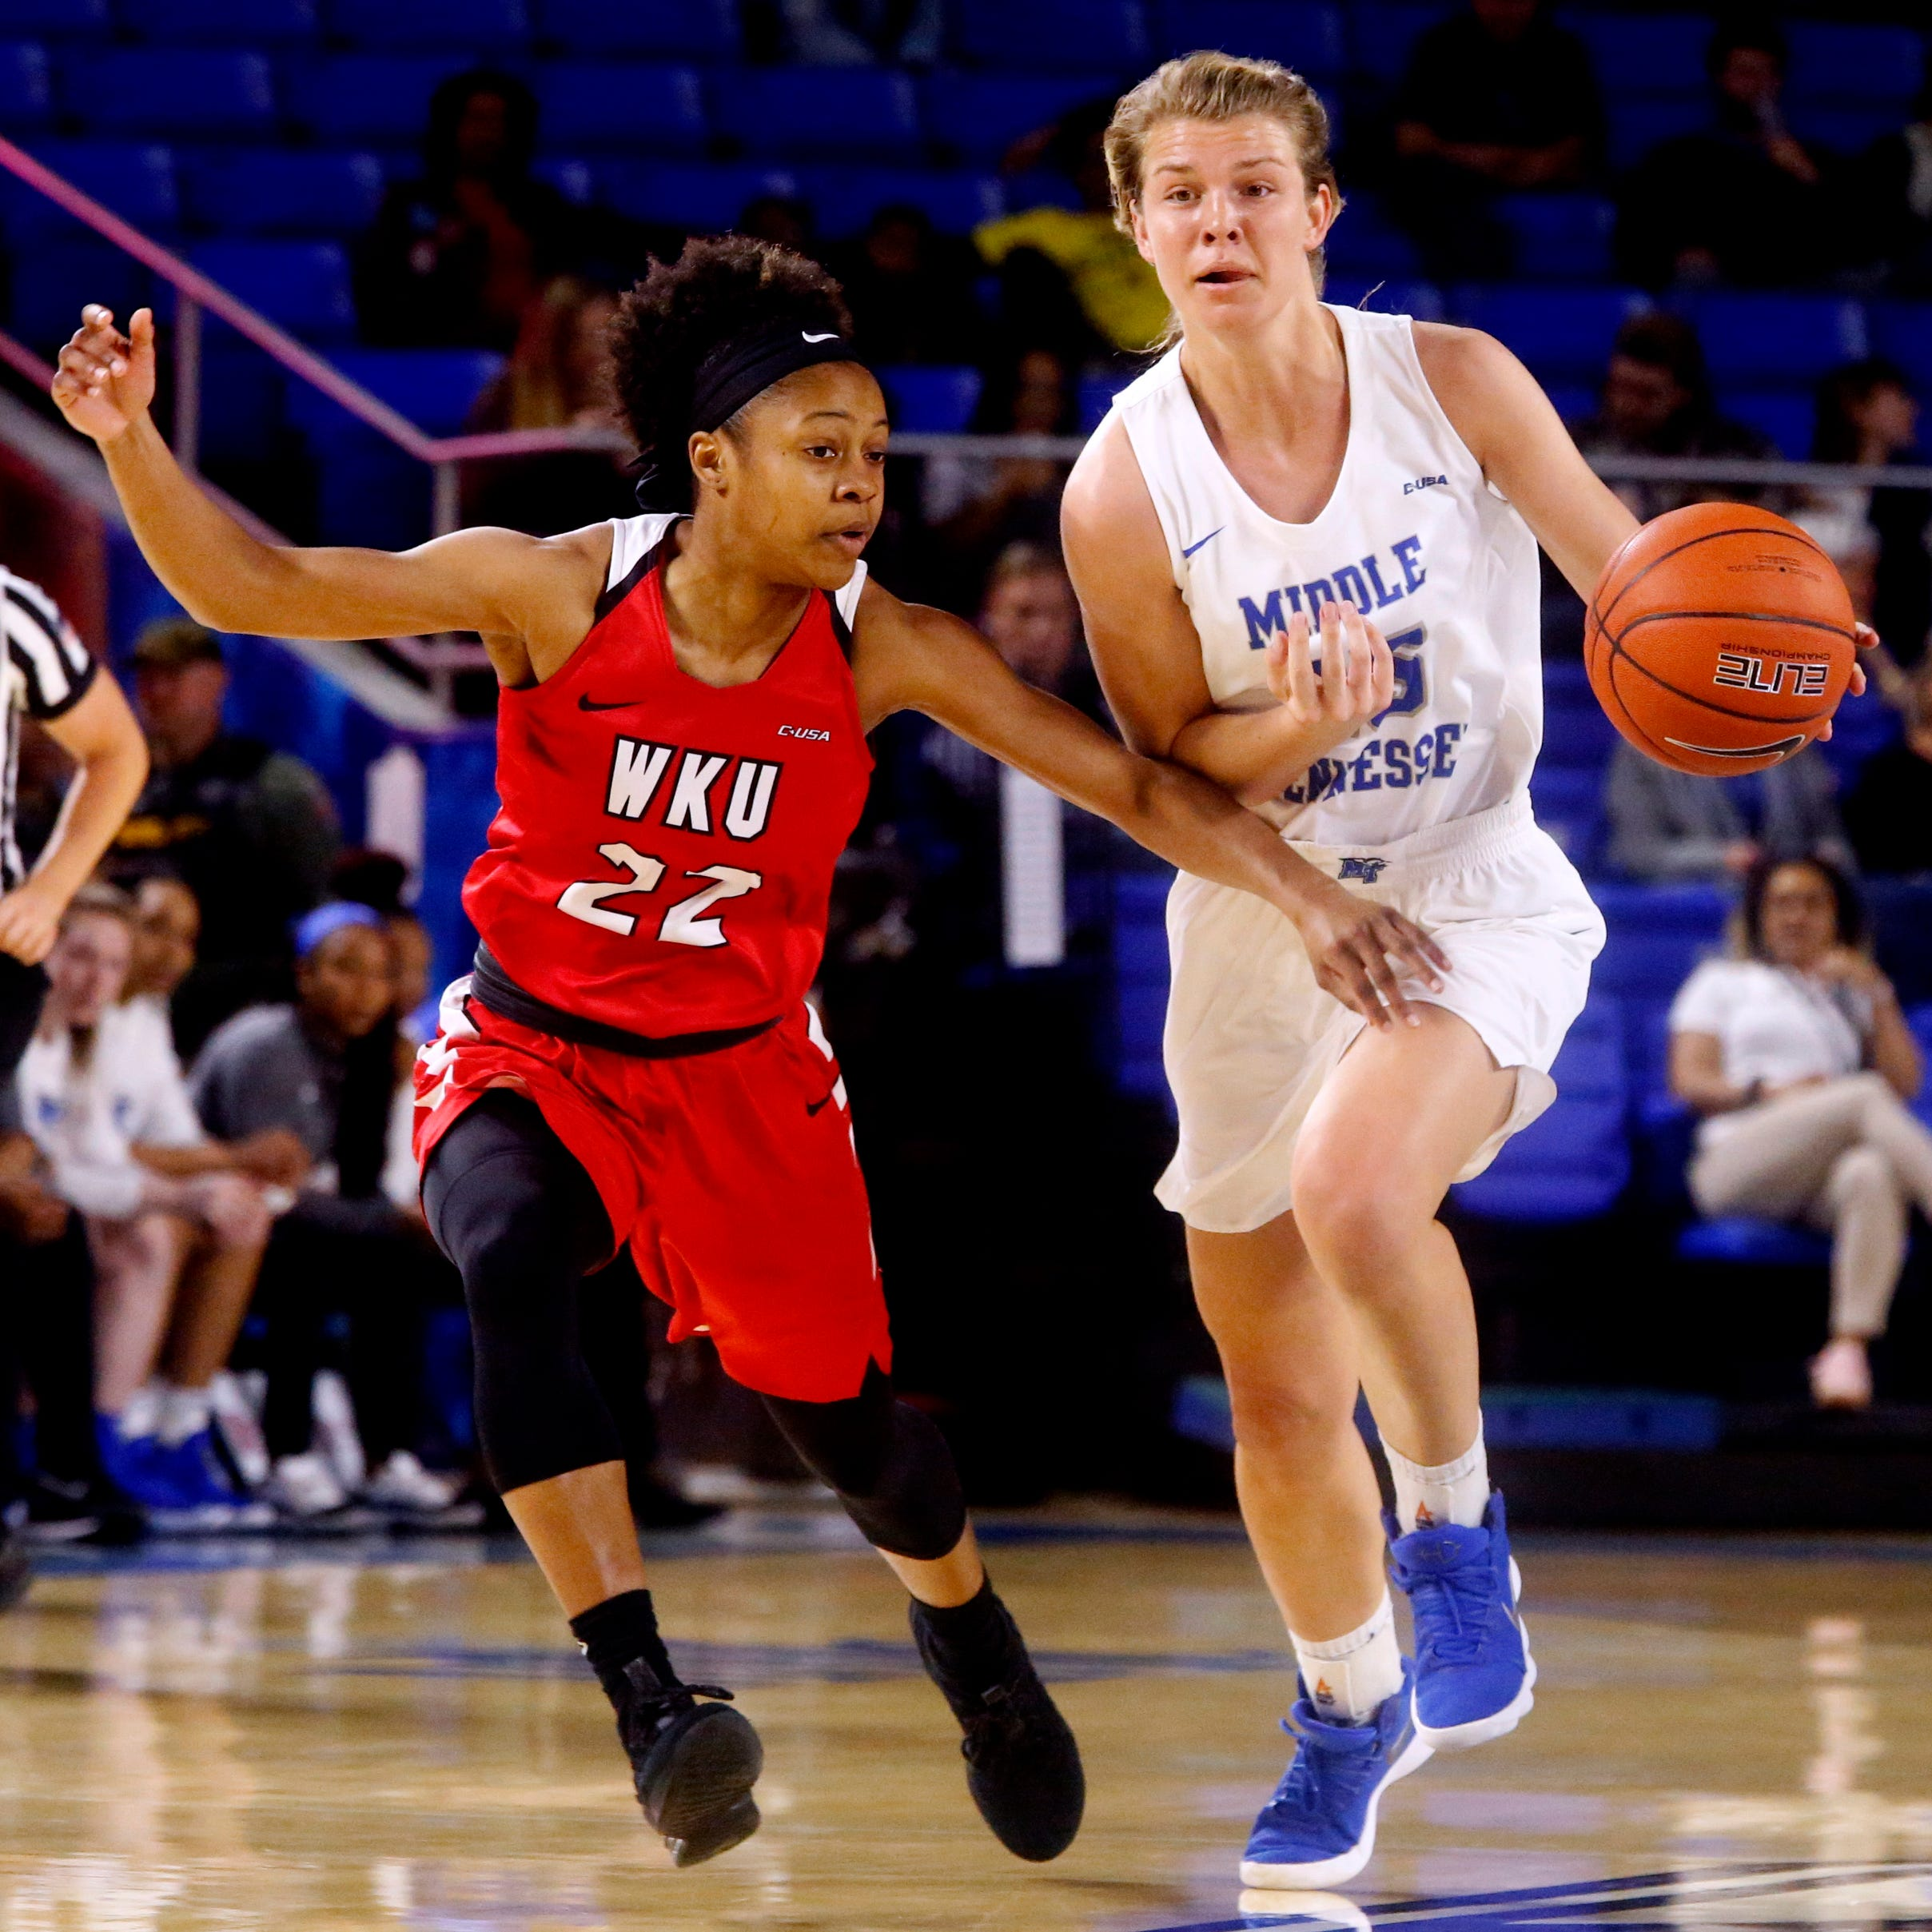 Anna Jones inspires MTSU Lady Raiders to win over rival Western Kentucky